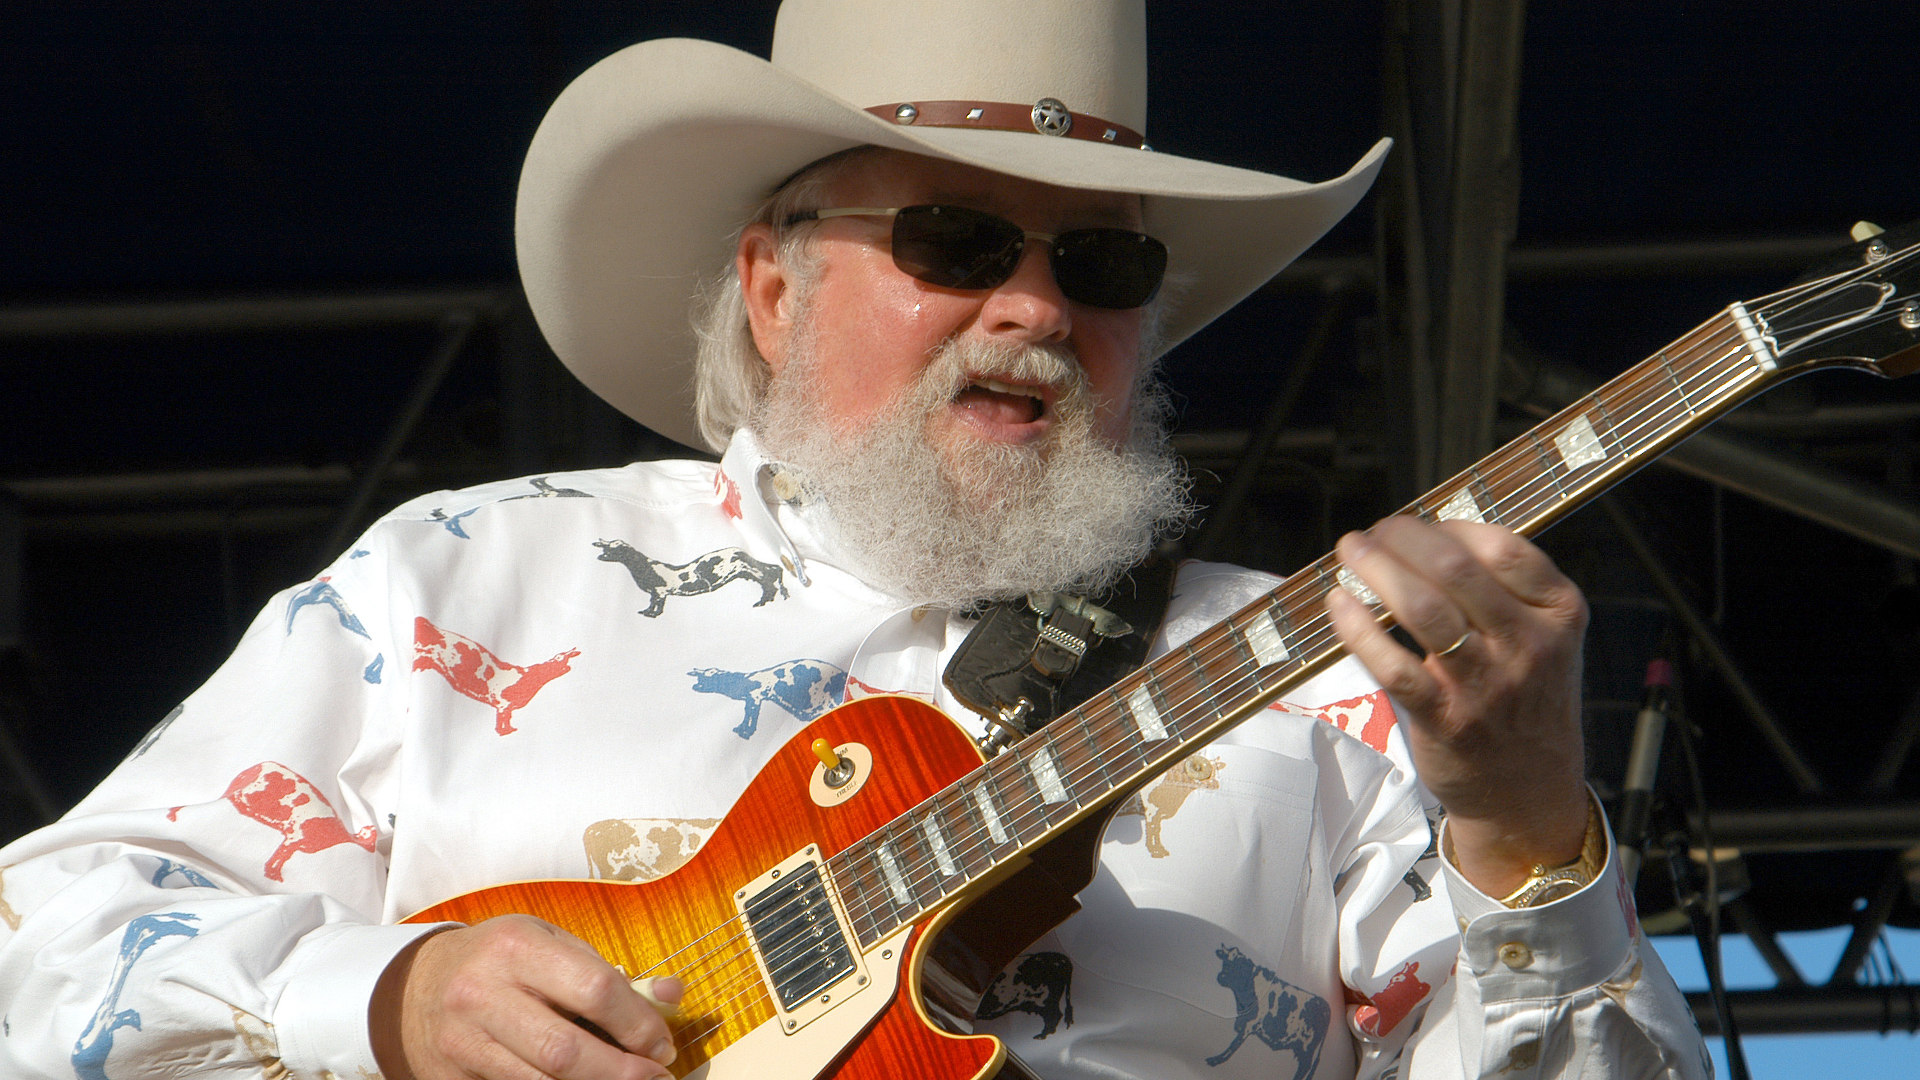 elvin bishop, black oak arkansas, steve earle, urban cowboy, chris ledoux, hank williams iii, molly hatchet, aaron lewis, mickey gilley, fire on the mountain, martina mcbride, the marshall tucker band, madolyn smith osborne, the devil went down to georgia, on charlie daniels